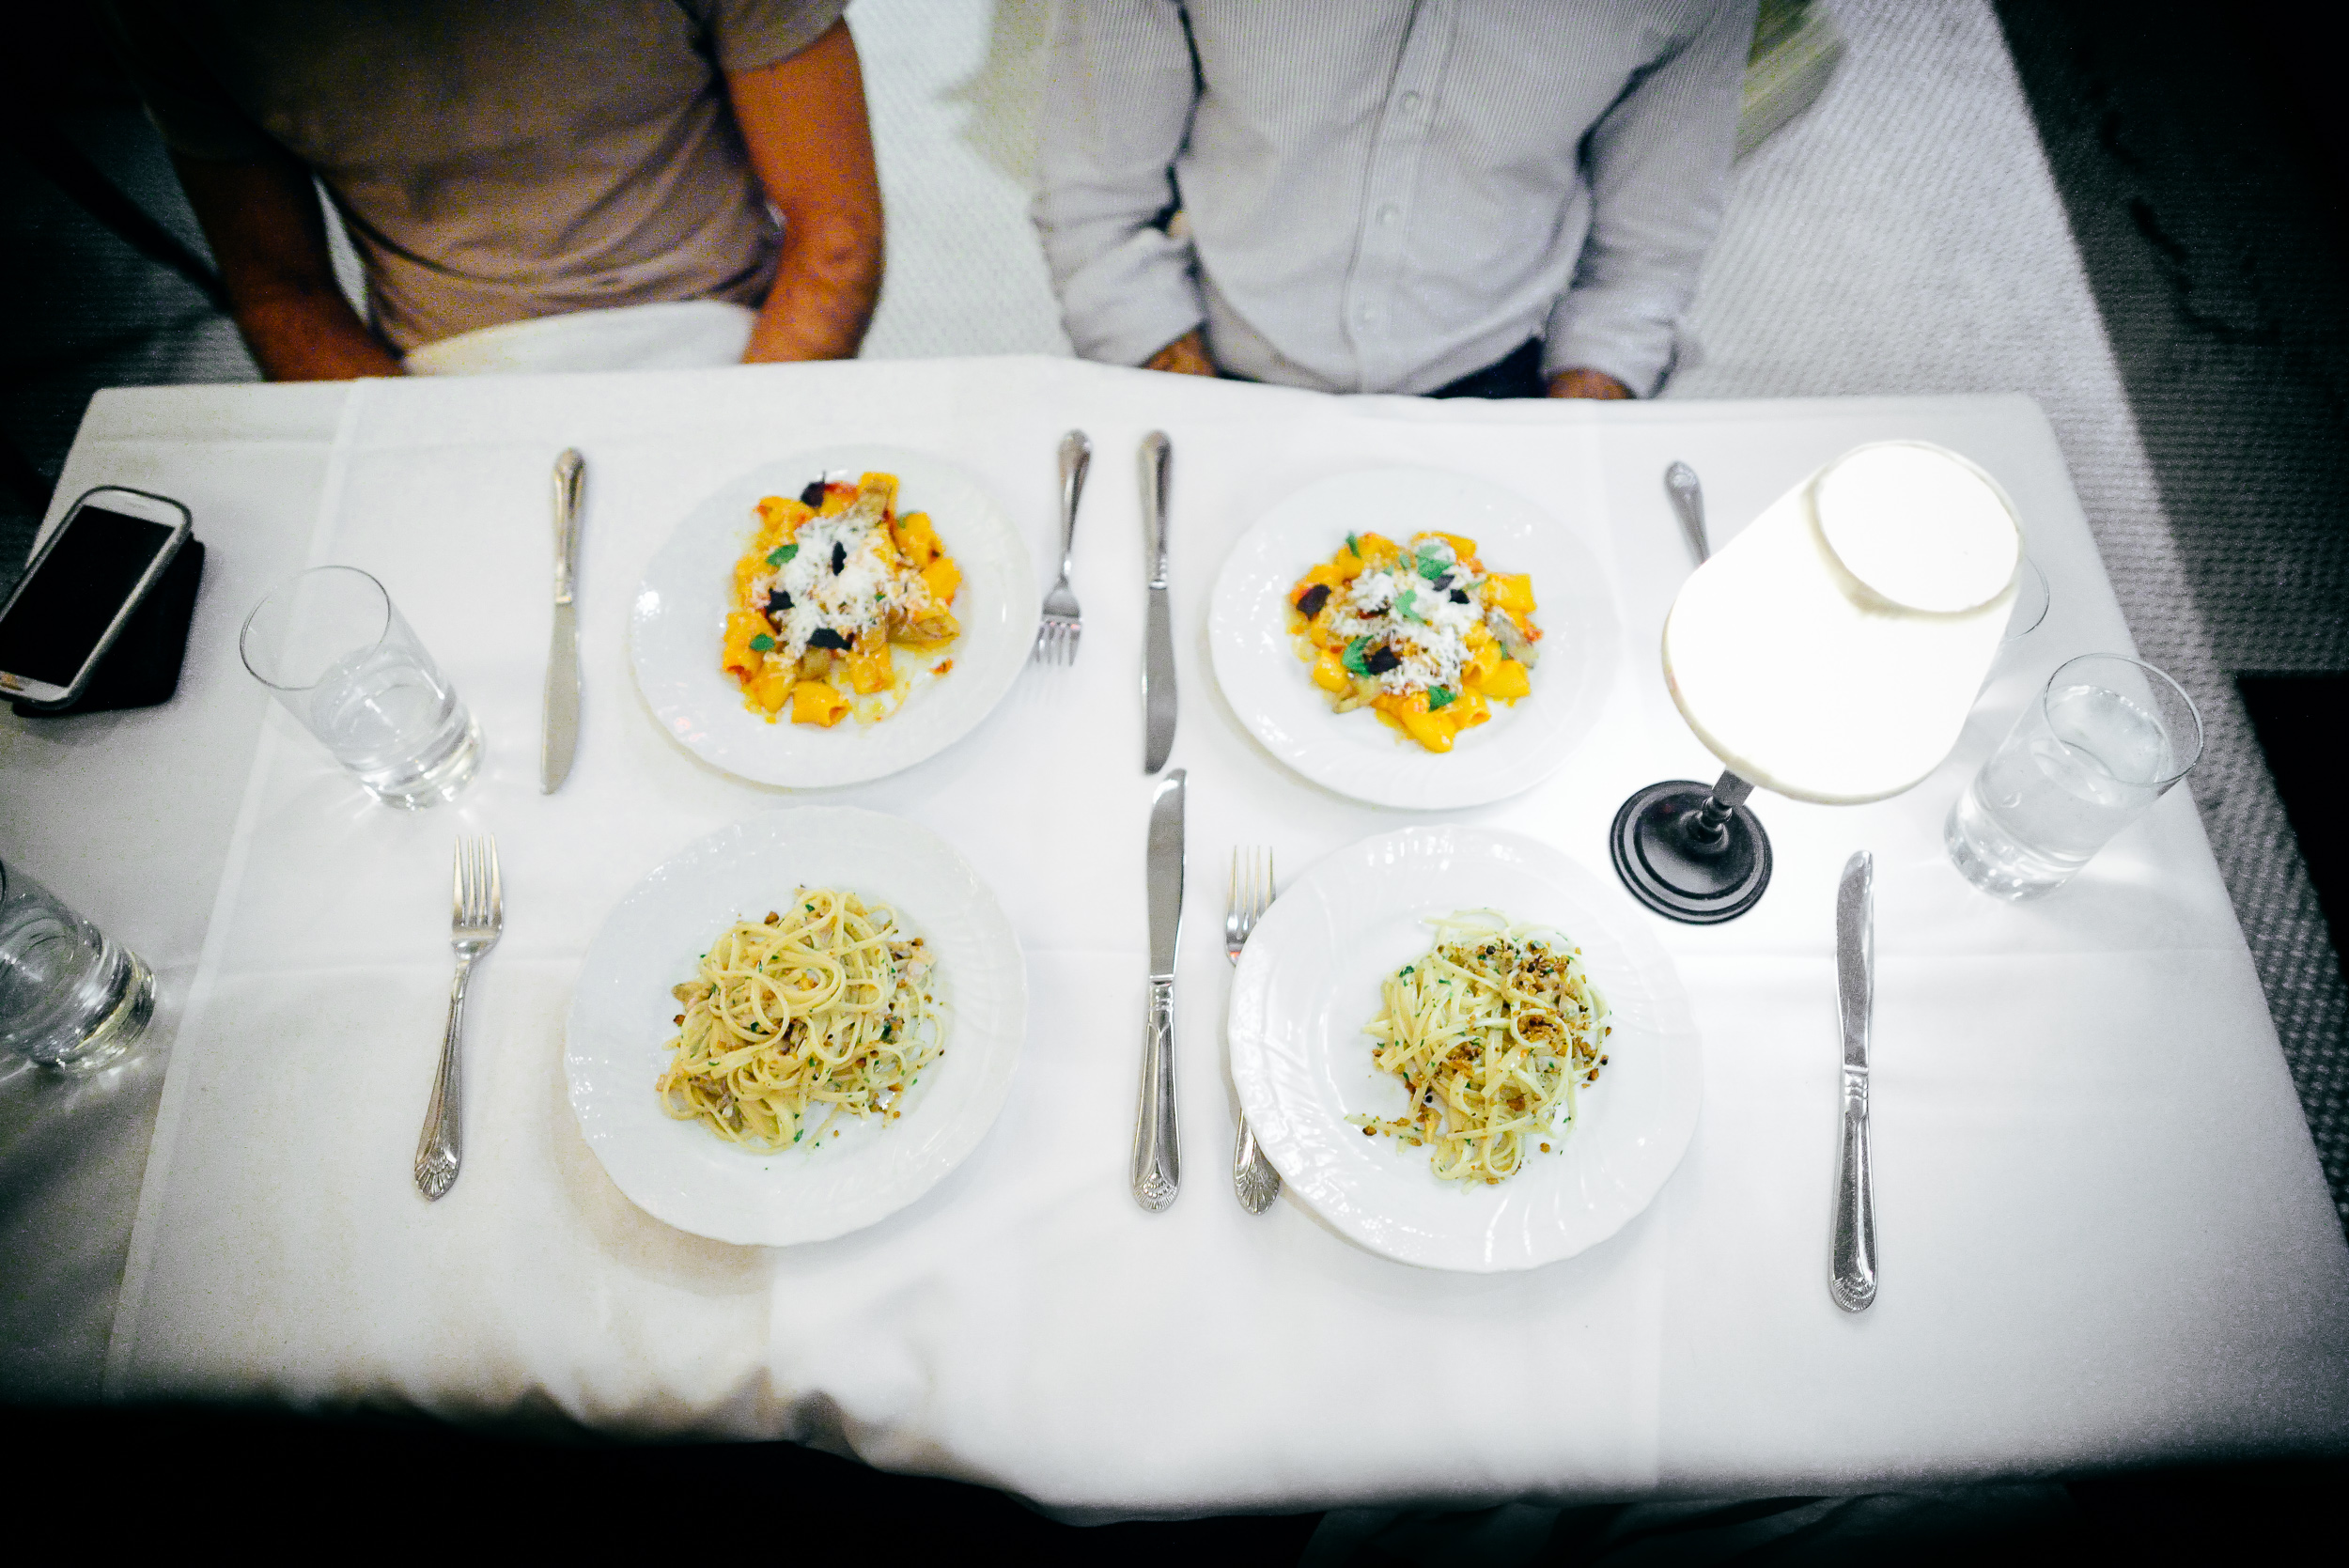 9th and 10th Courses: Linguine with clams, burnt pizza dough cru